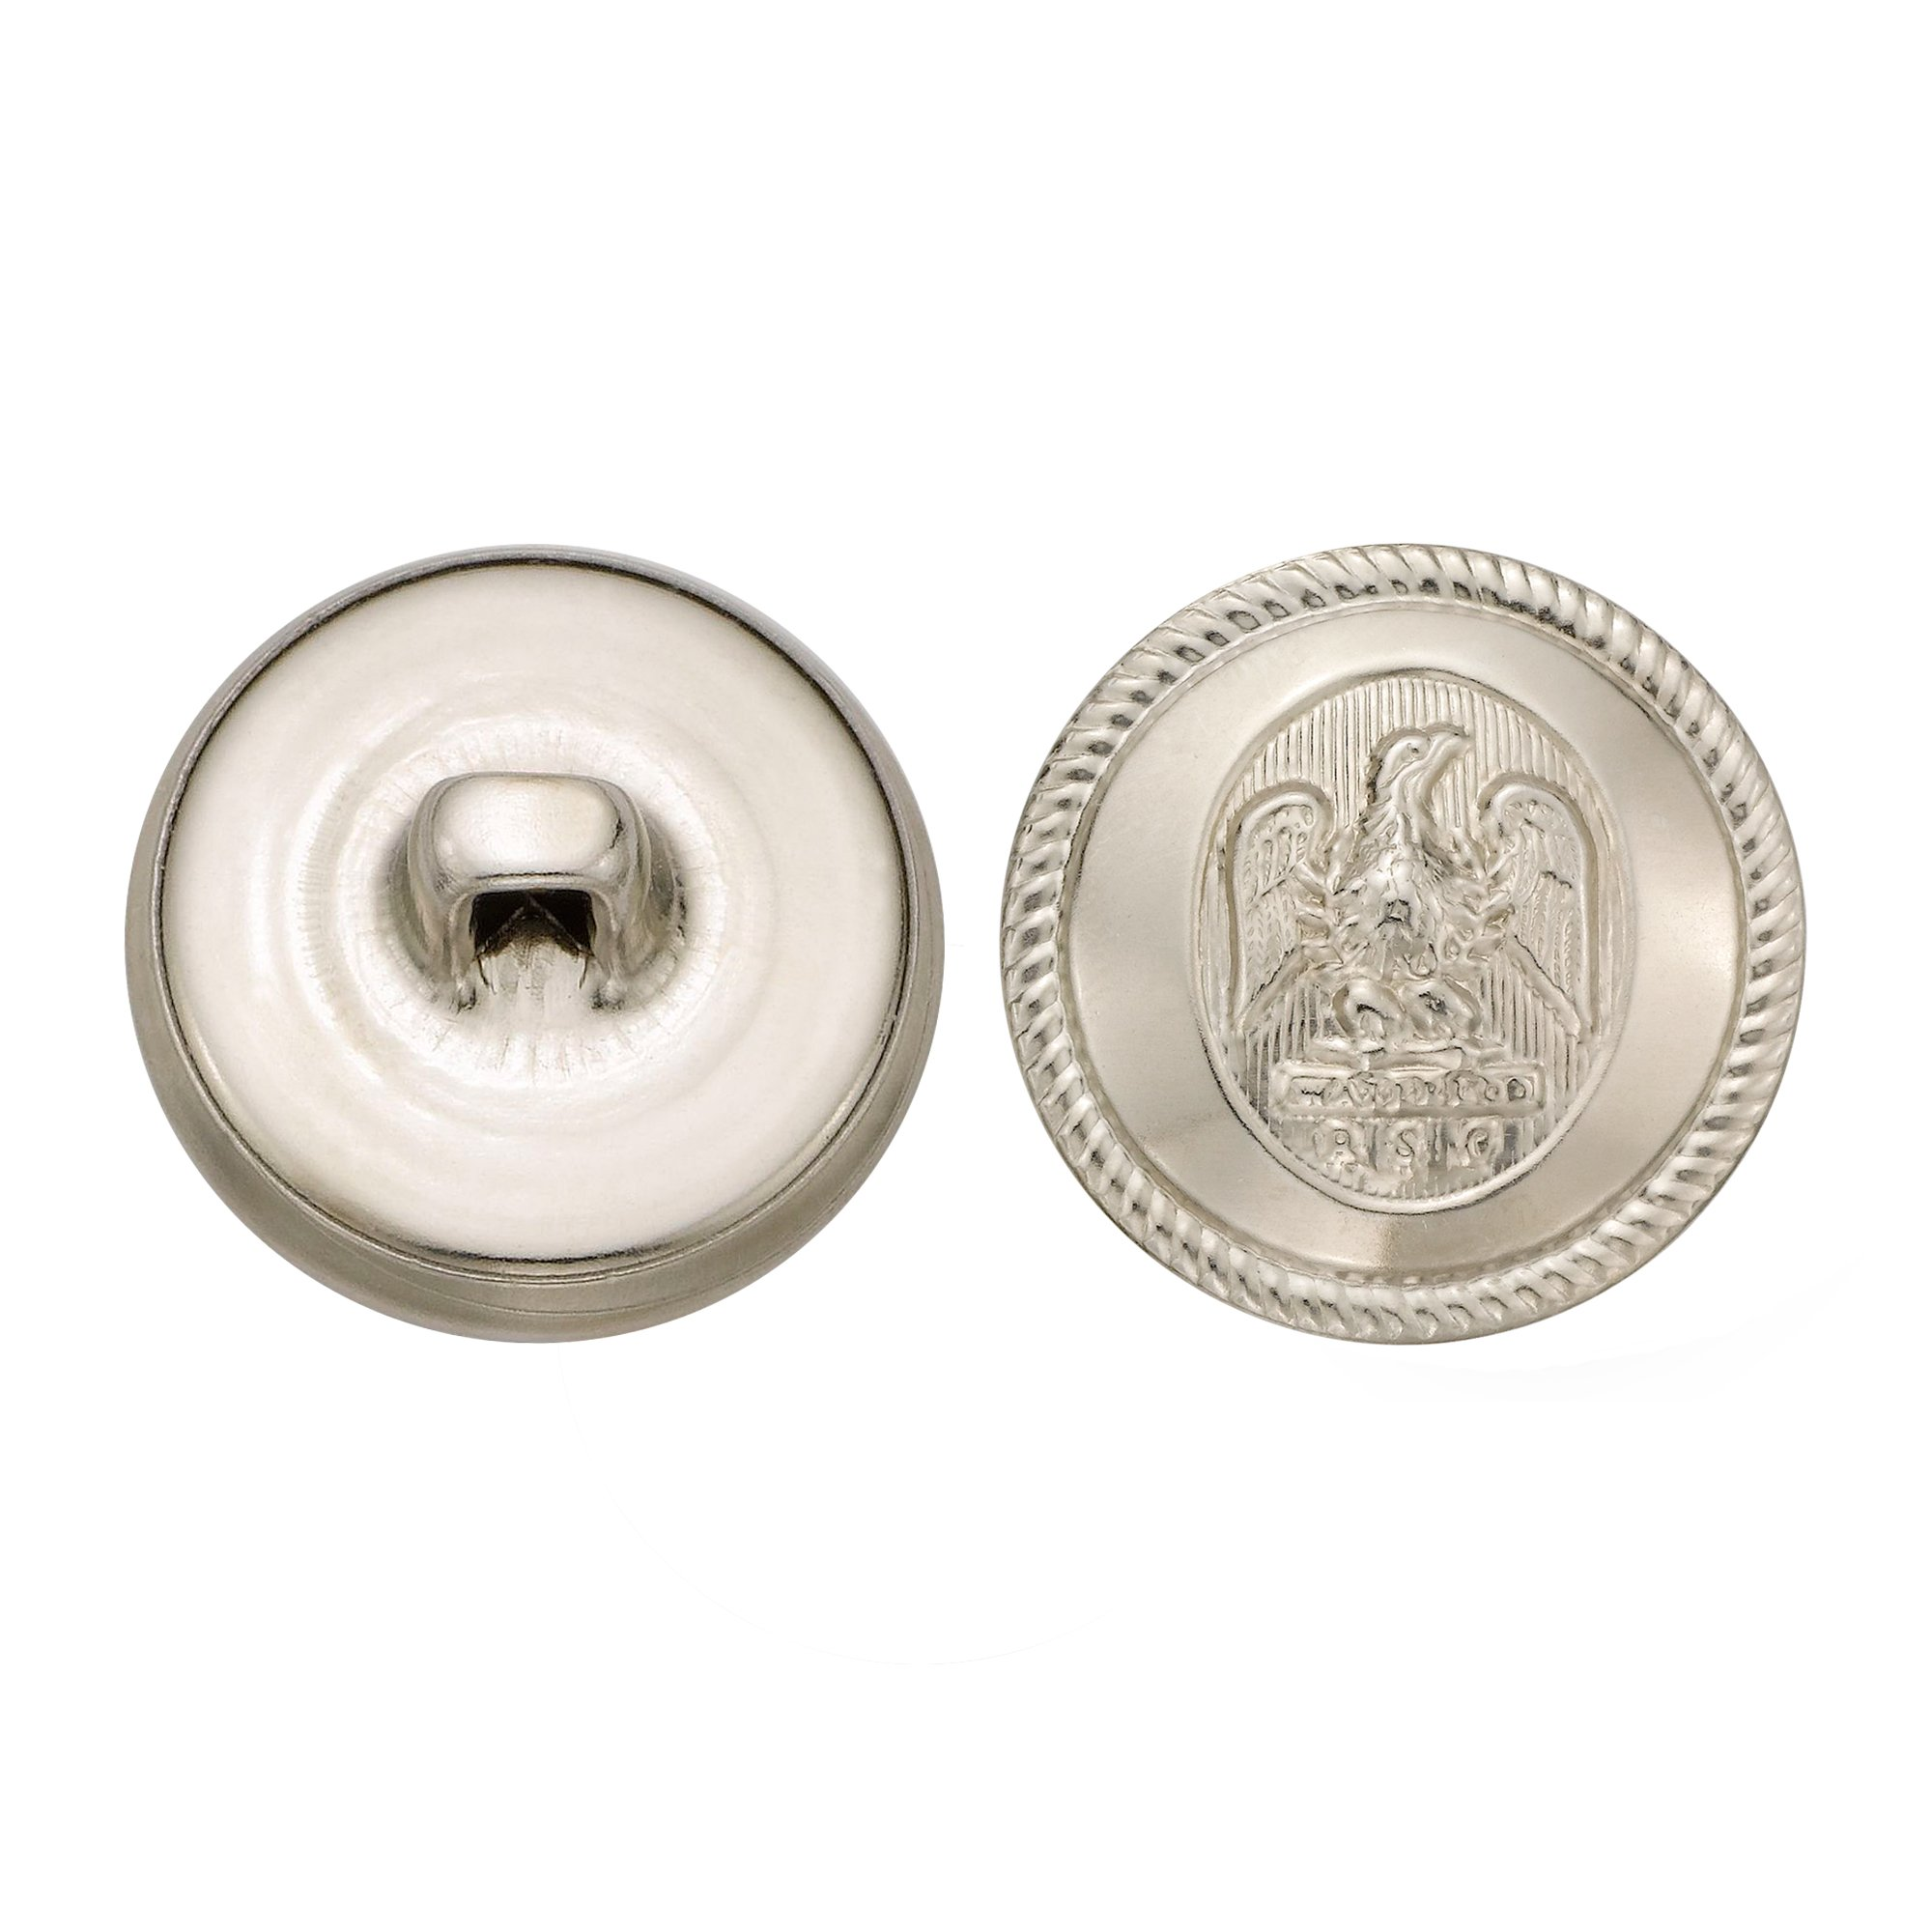 C&C Metal Products 5064 Rope Rim Usa Eagle Metal Button, Size 30 Ligne, Nickel, 36-Pack